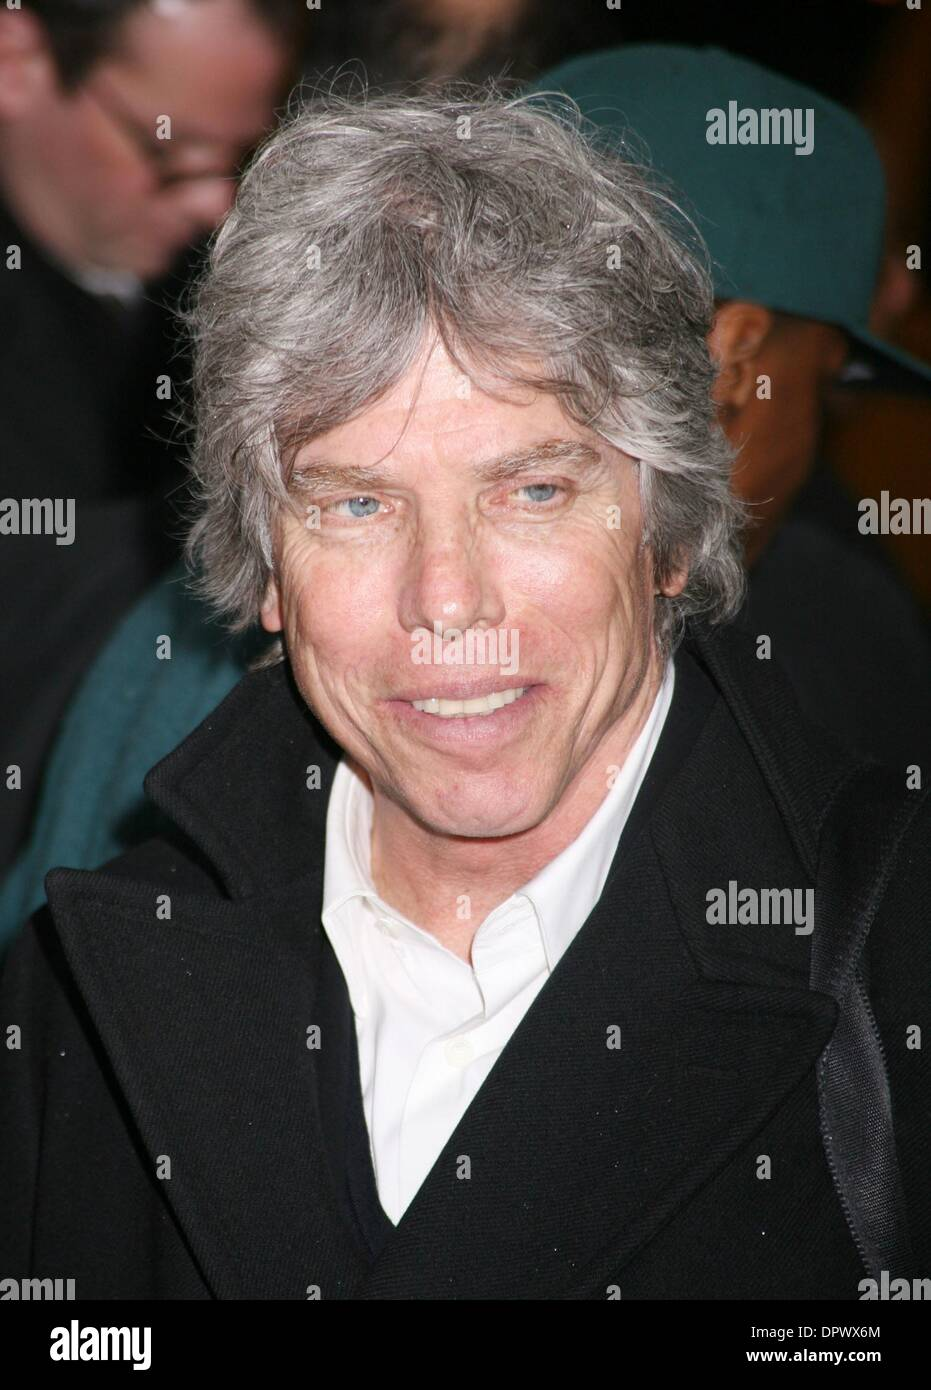 Feb 18, 2009 - New York, New York, USA - Publicist KEN SUNSHINE attends the special screening of 'Tyler Perry's Madea Goes to Jail' held at the AMC Loews Lincoln Center Theater. (Credit Image: © Nancy Kaszerman) - Stock Image